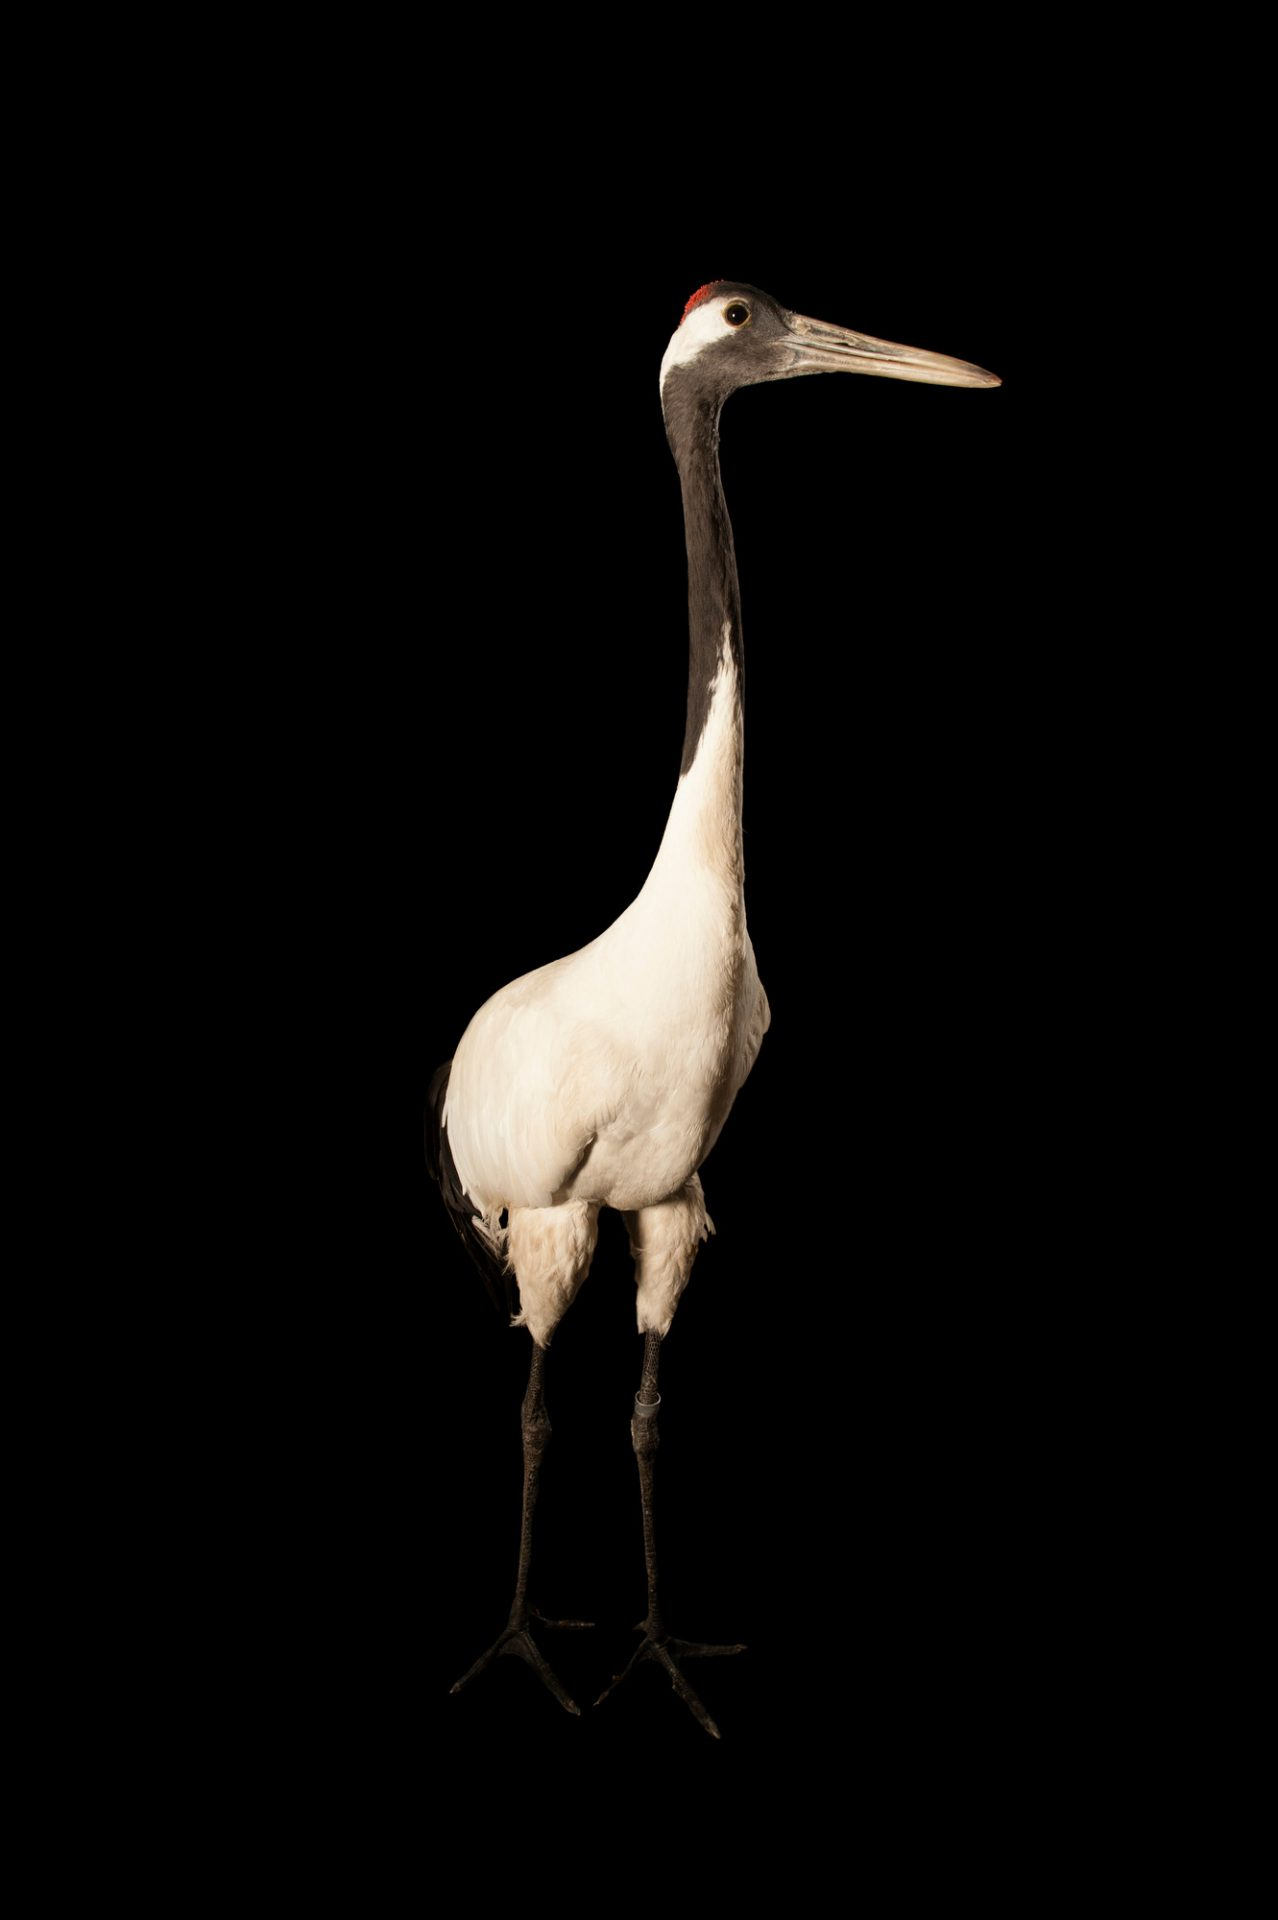 An endangered (IUCN) and federally endangered red-crowned crane (Grus japonensis) at the Kansas City Zoo.